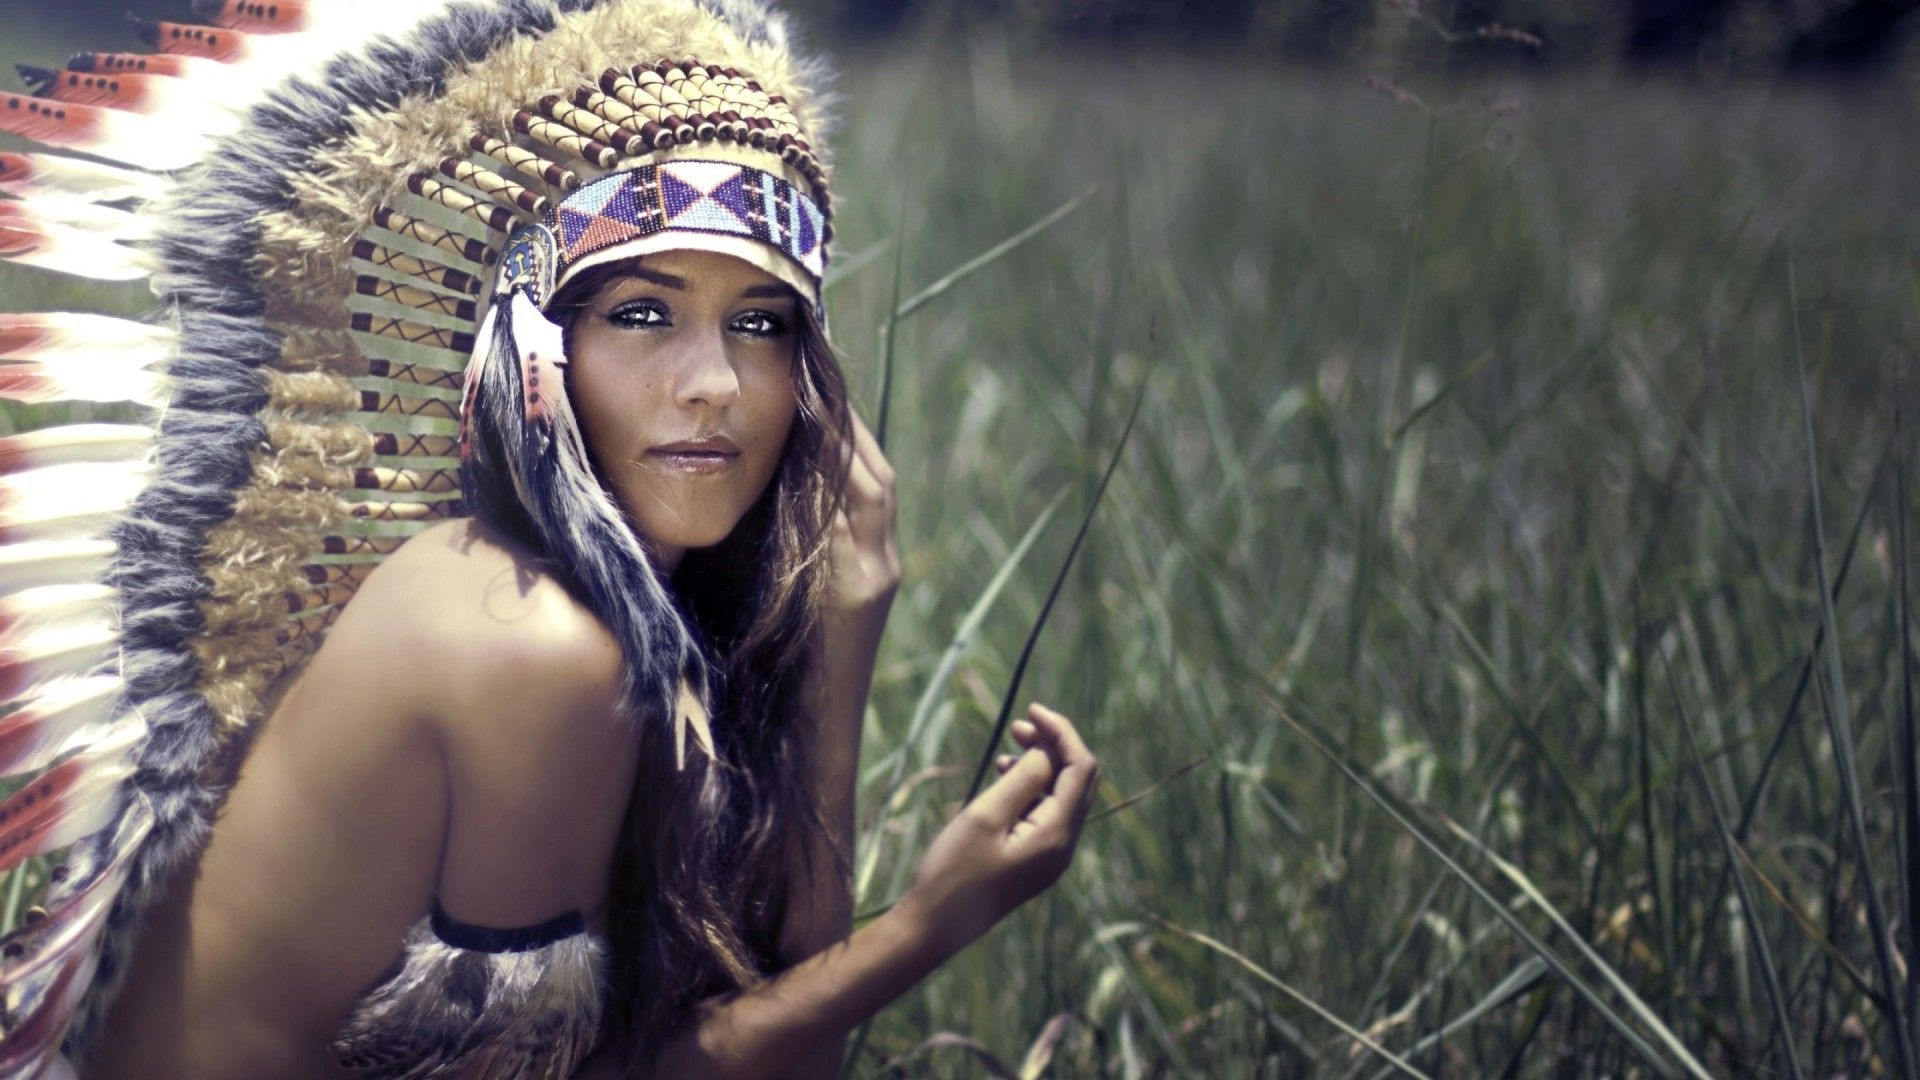 The Indian Feathers On The Head